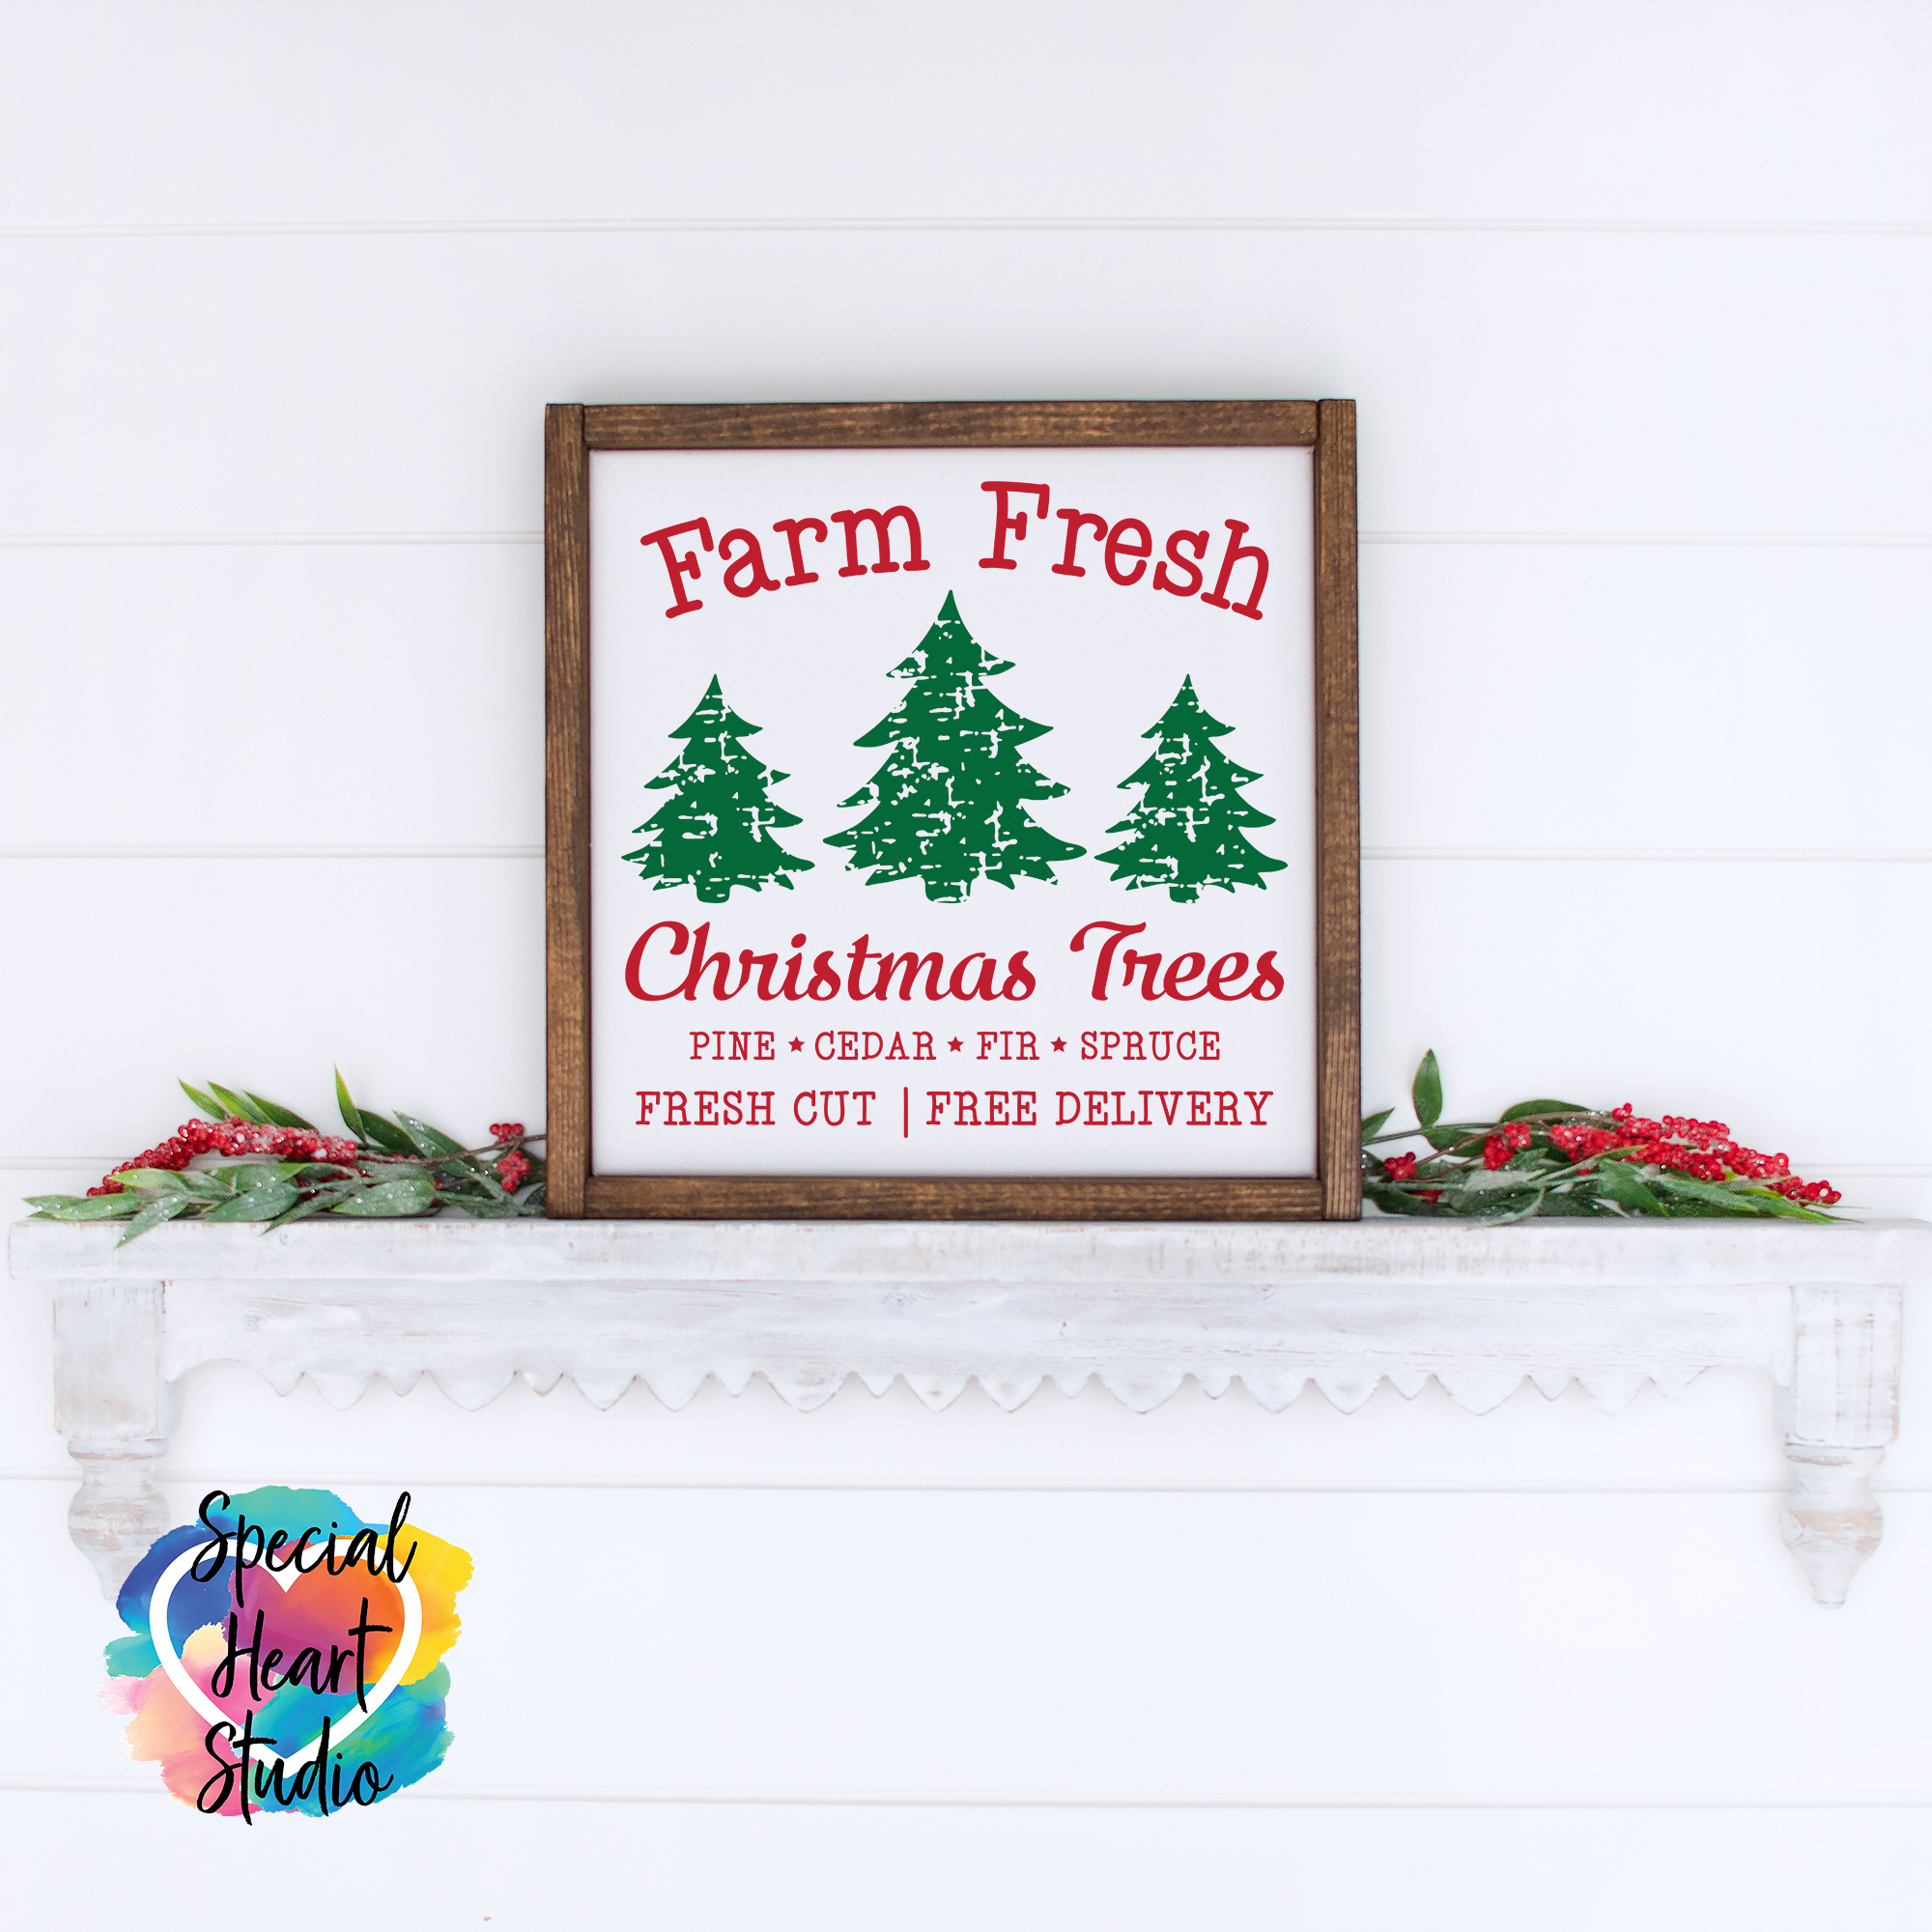 Farm Fresh Christmas Tree Farm Svg Free Svg Cut Files Create Your Diy Projects Using Your Cricut Explore Silhouette And More The Free Cut Files Include Svg Dxf Eps And Png